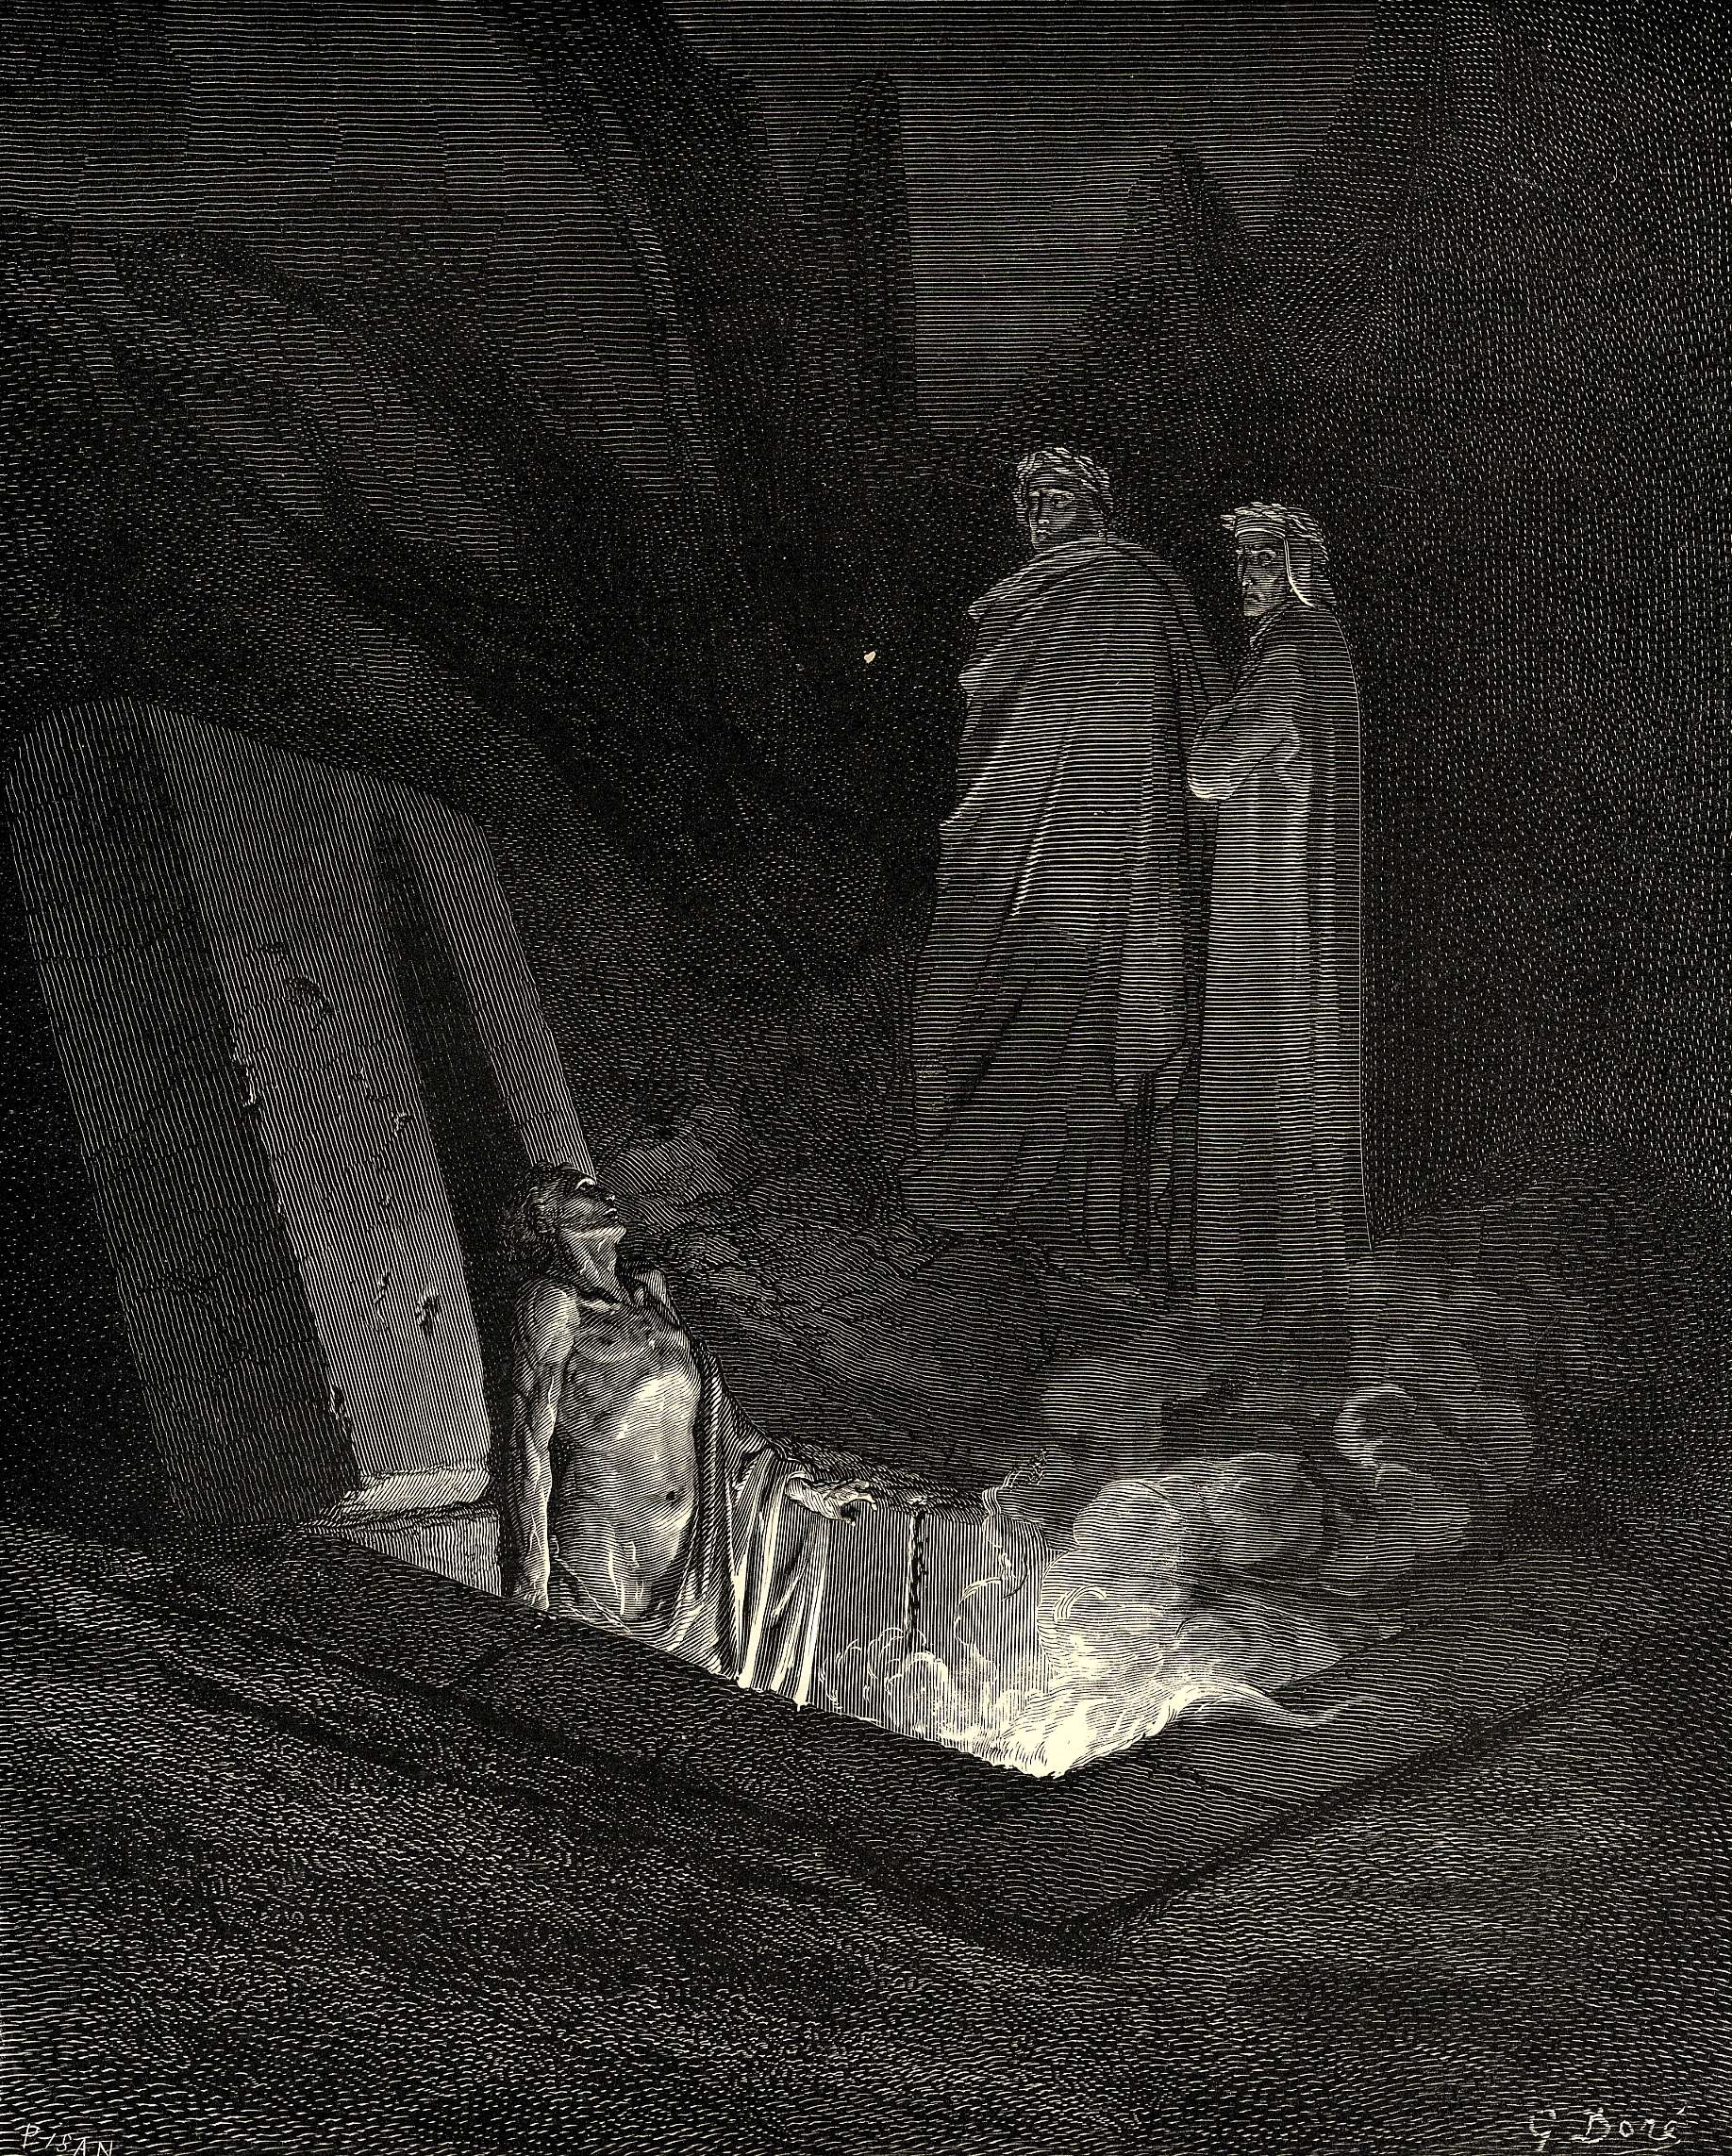 the inferno canto gustave dore org the inferno canto 10 gustave dore